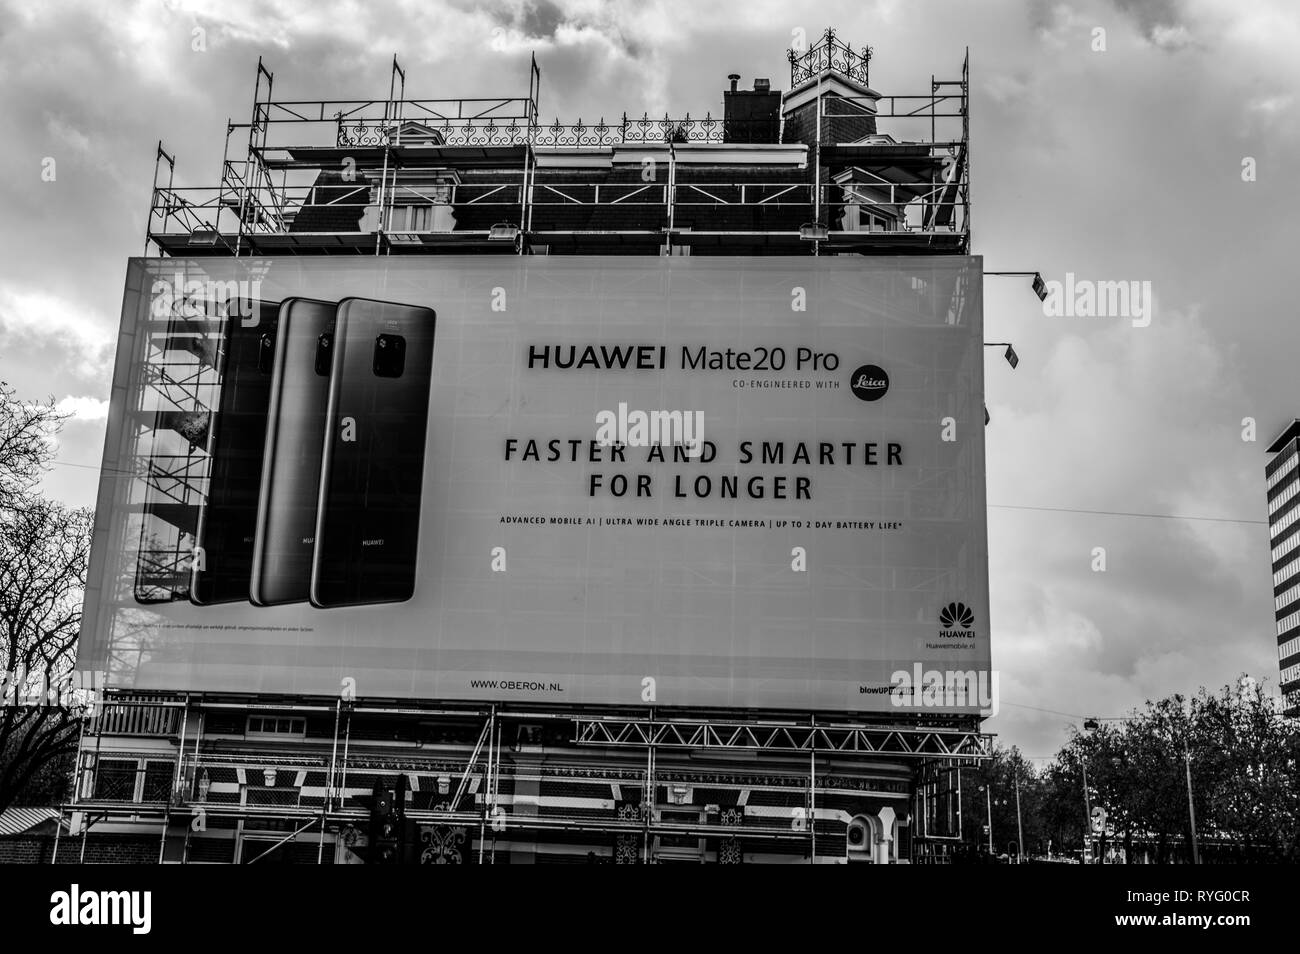 Scaffolds And Advertising For Huawei At Amsterdam The Netherlands 2018 In Black And White - Stock Image